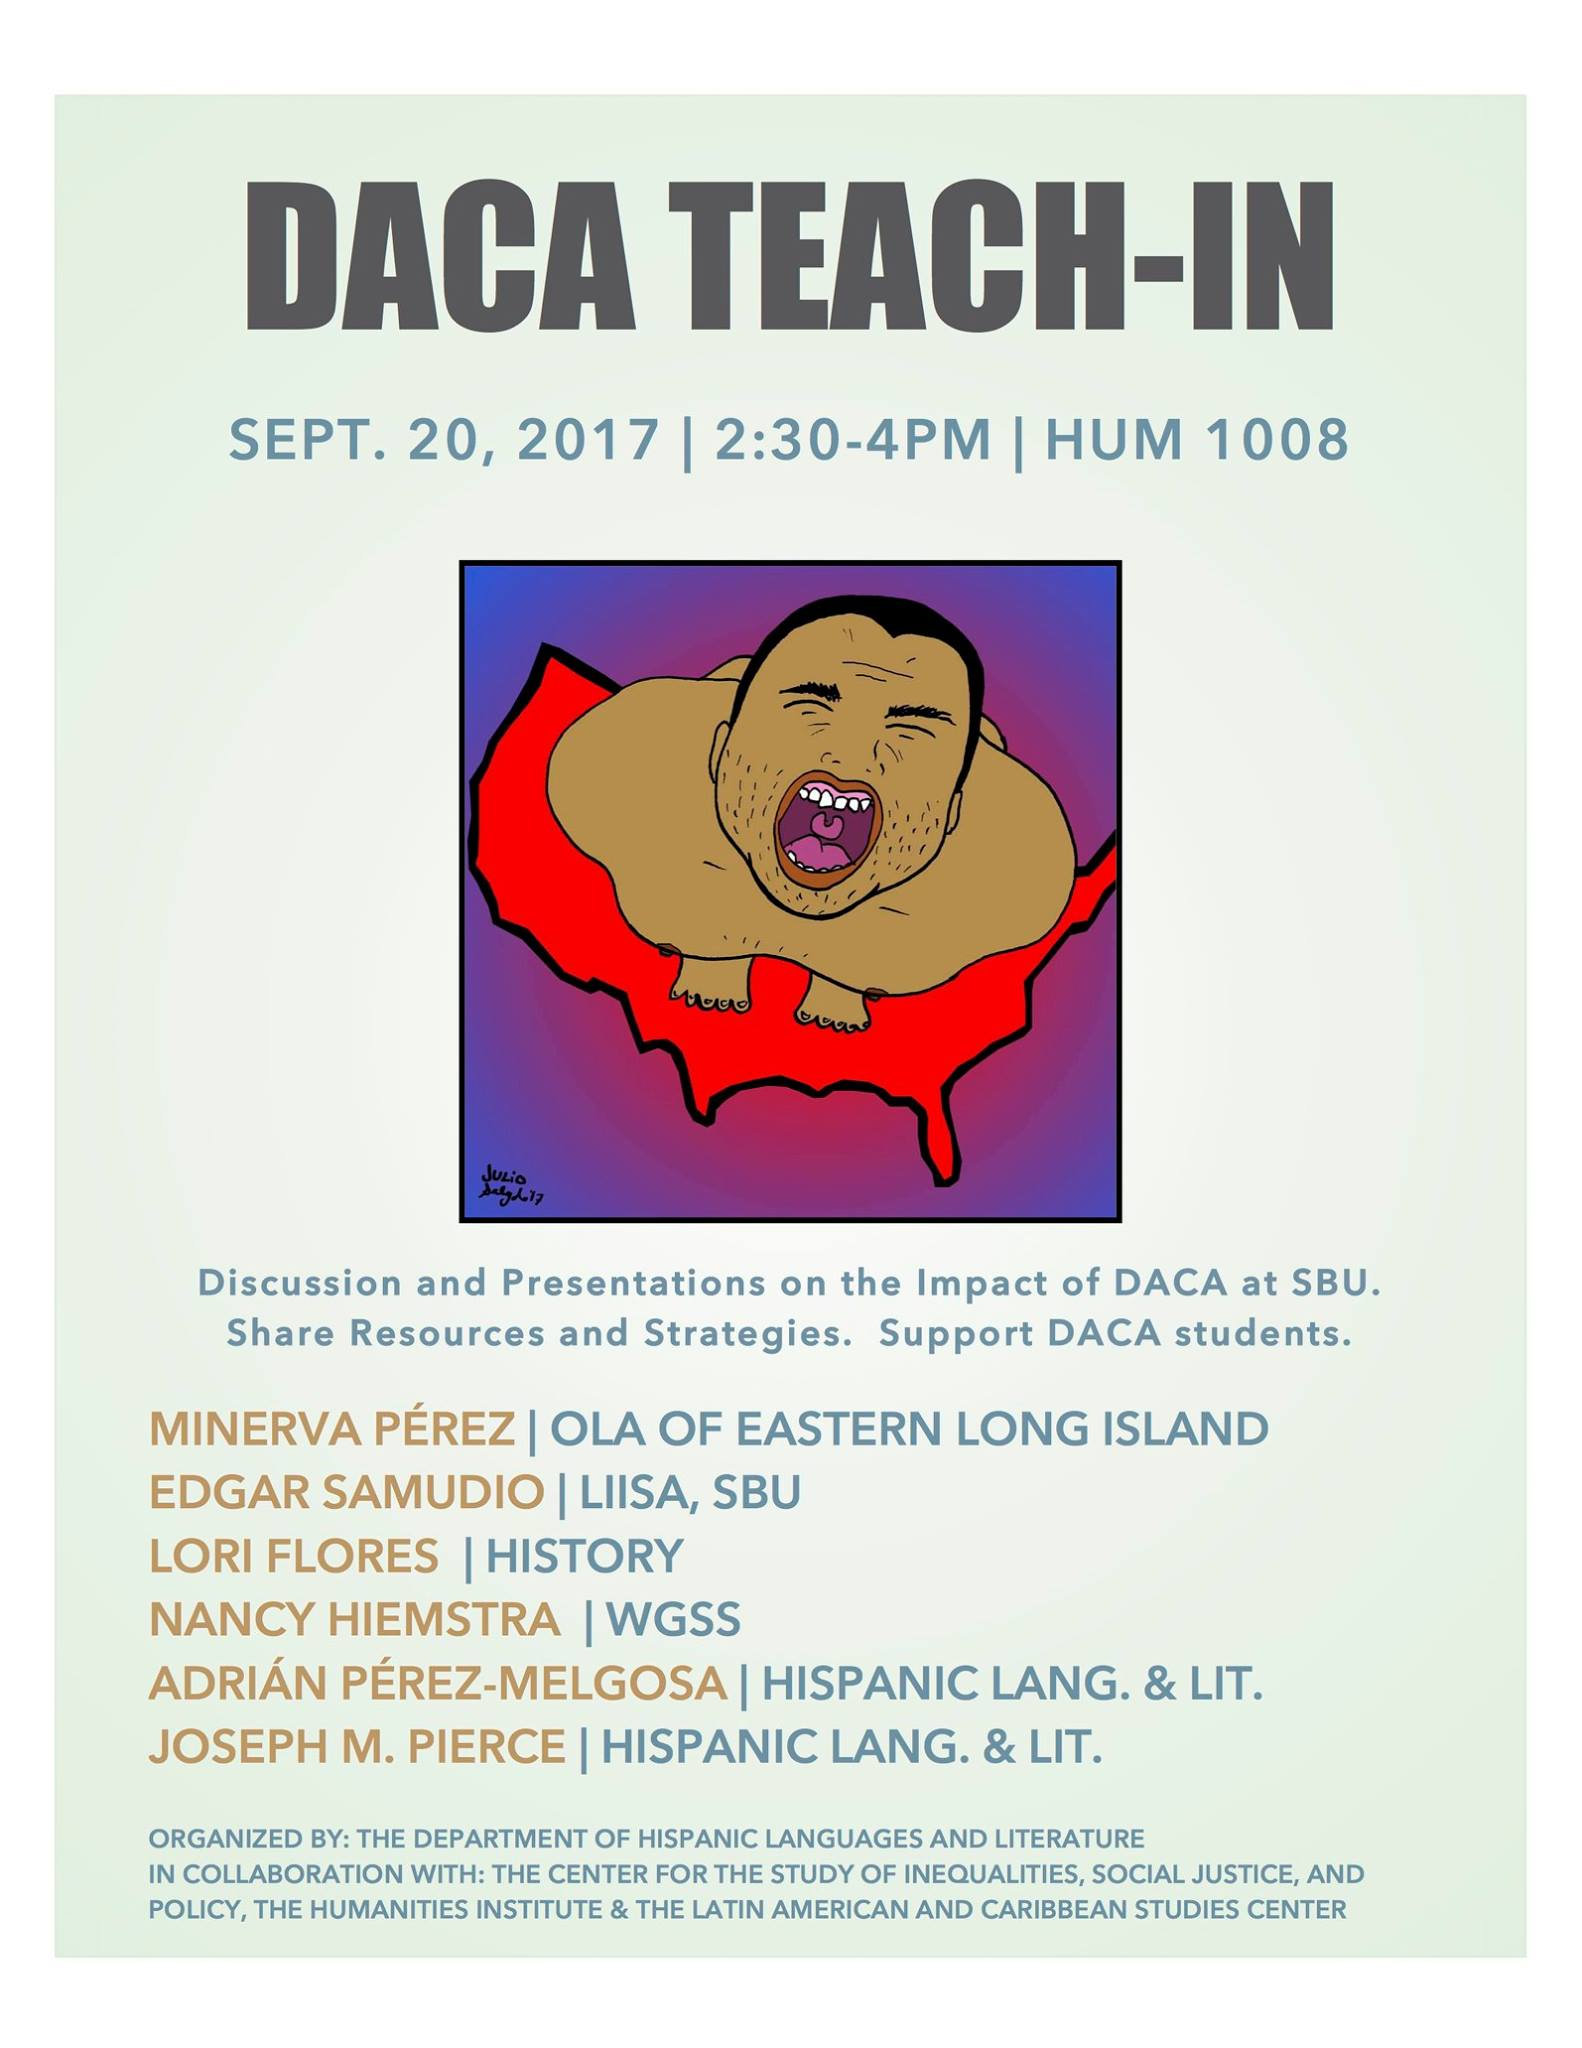 DACA teach in